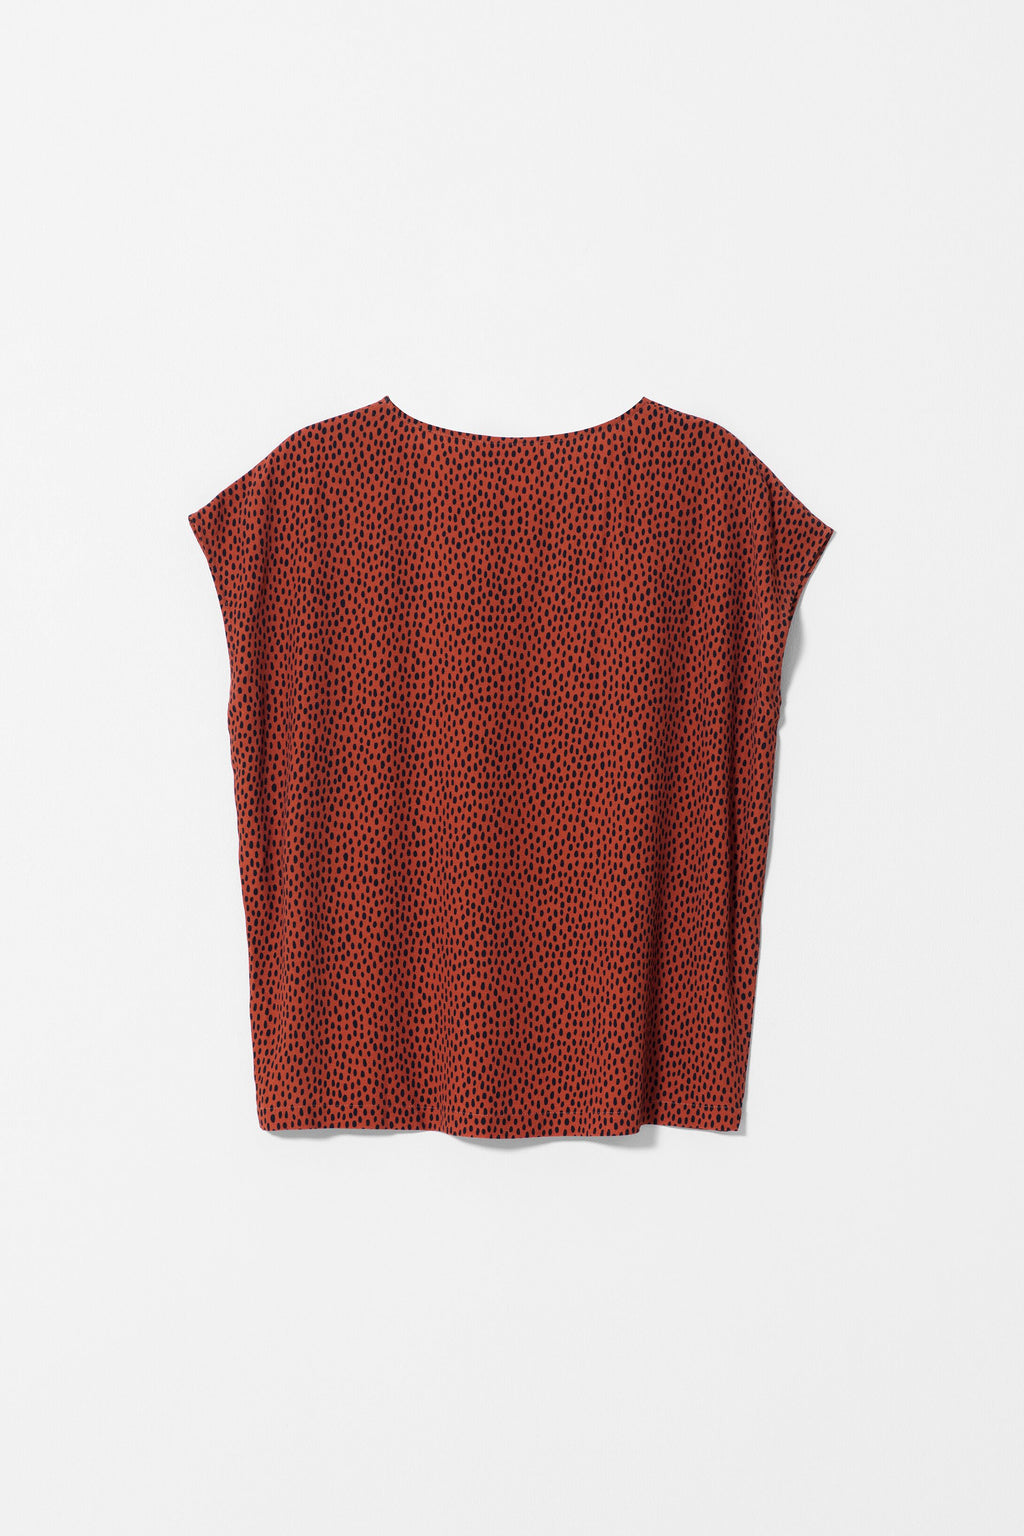 ELK The Label - Oens Shell Top online at PAYA boutique